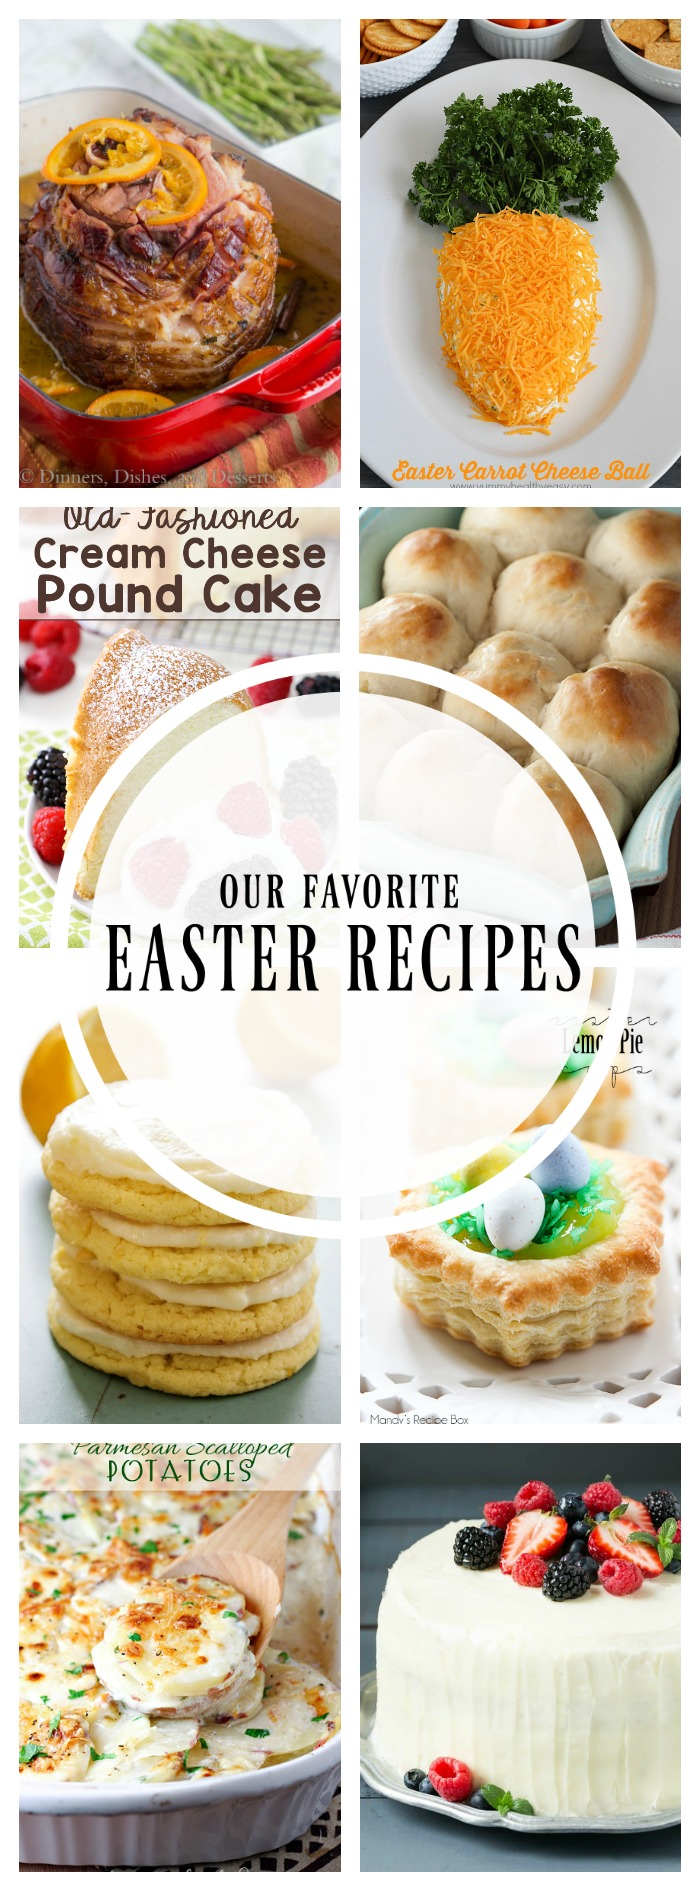 Most Popular Favorite Easter Recipes